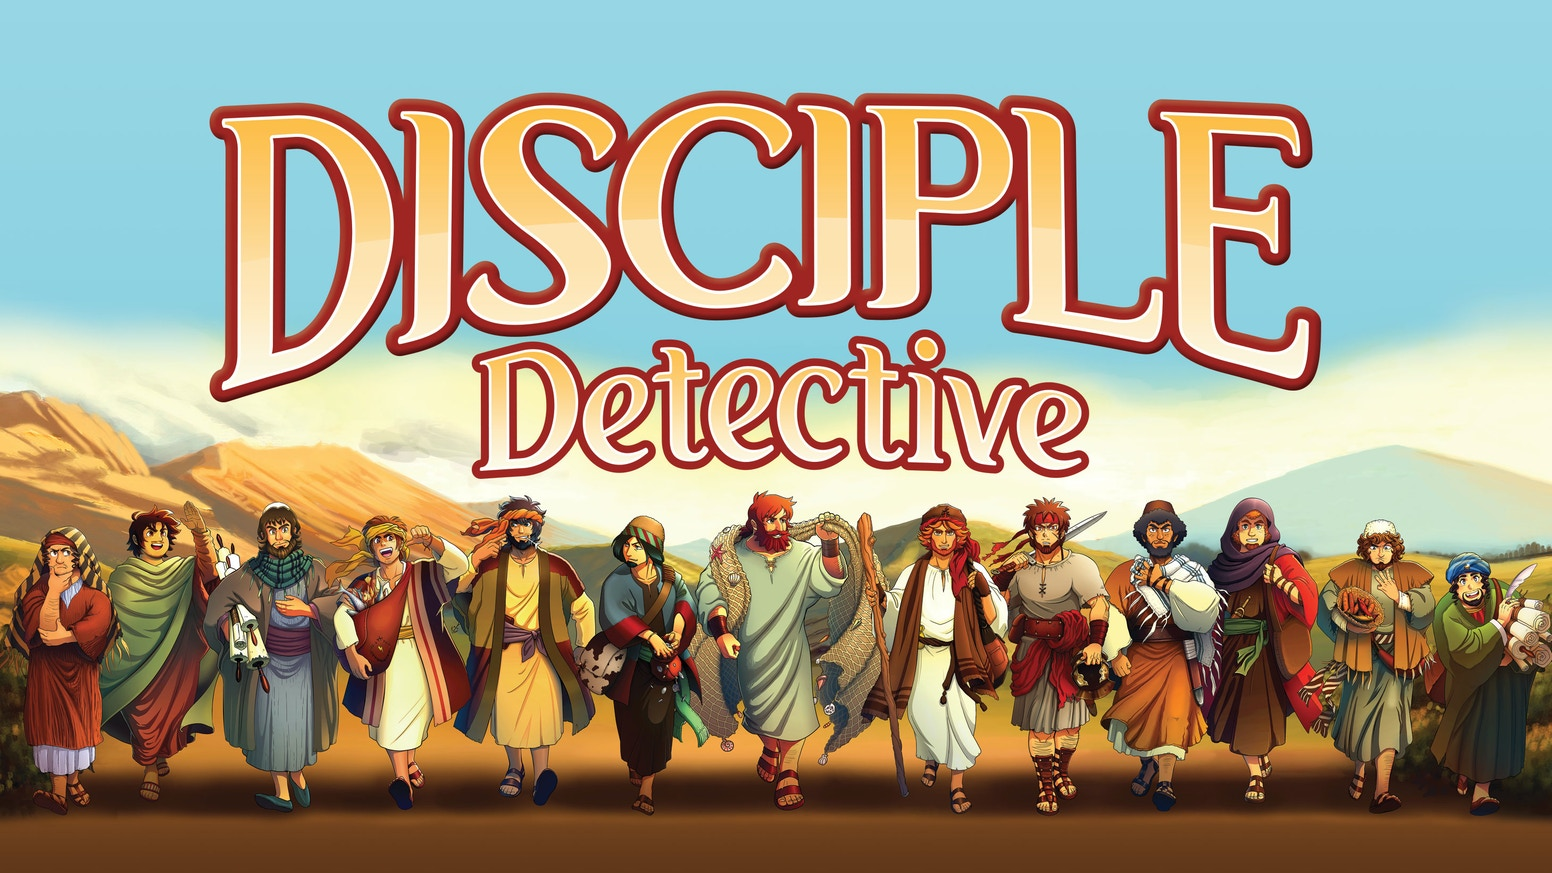 A 2-4 player cooperative or competitive deduction game starring the Disciples. Cards in hand are hidden, use clues and logic to win!